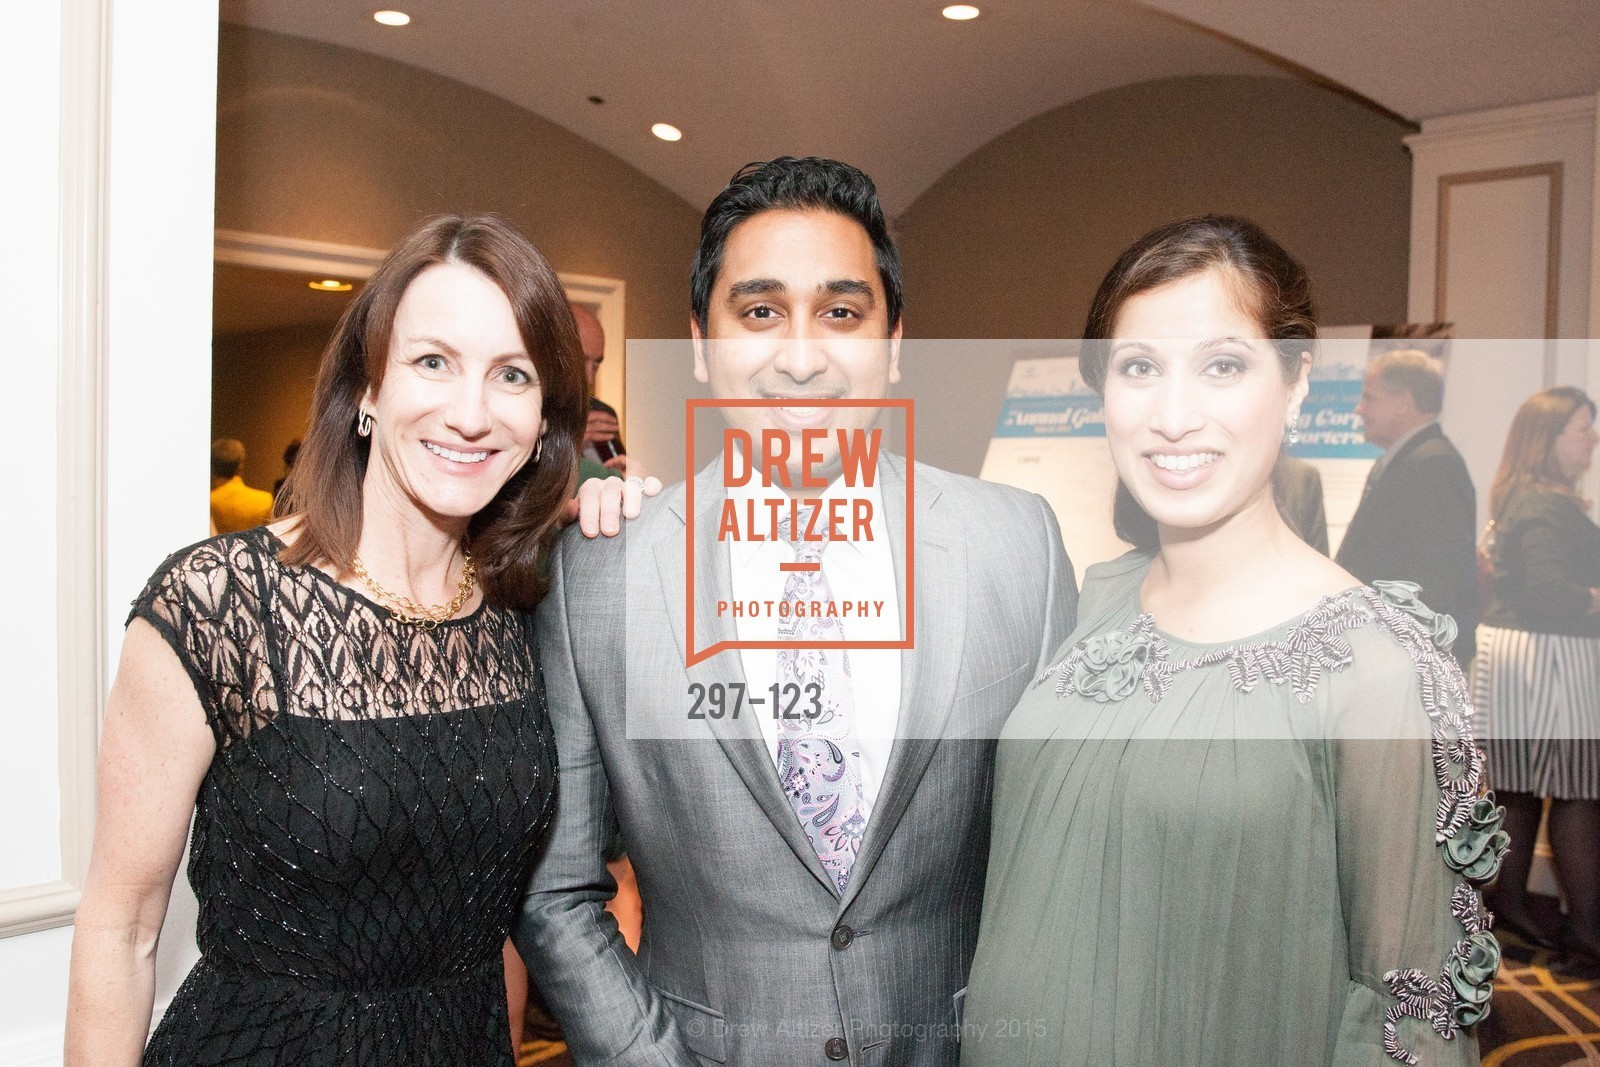 Stephanie Mellin, Ashul Govil, Angeli Jain, 2015 Boys and Girls Club Annual Gala, The Fairmont San Francisco. 950 Mason St, May 20th, 2015,Drew Altizer, Drew Altizer Photography, full-service agency, private events, San Francisco photographer, photographer california